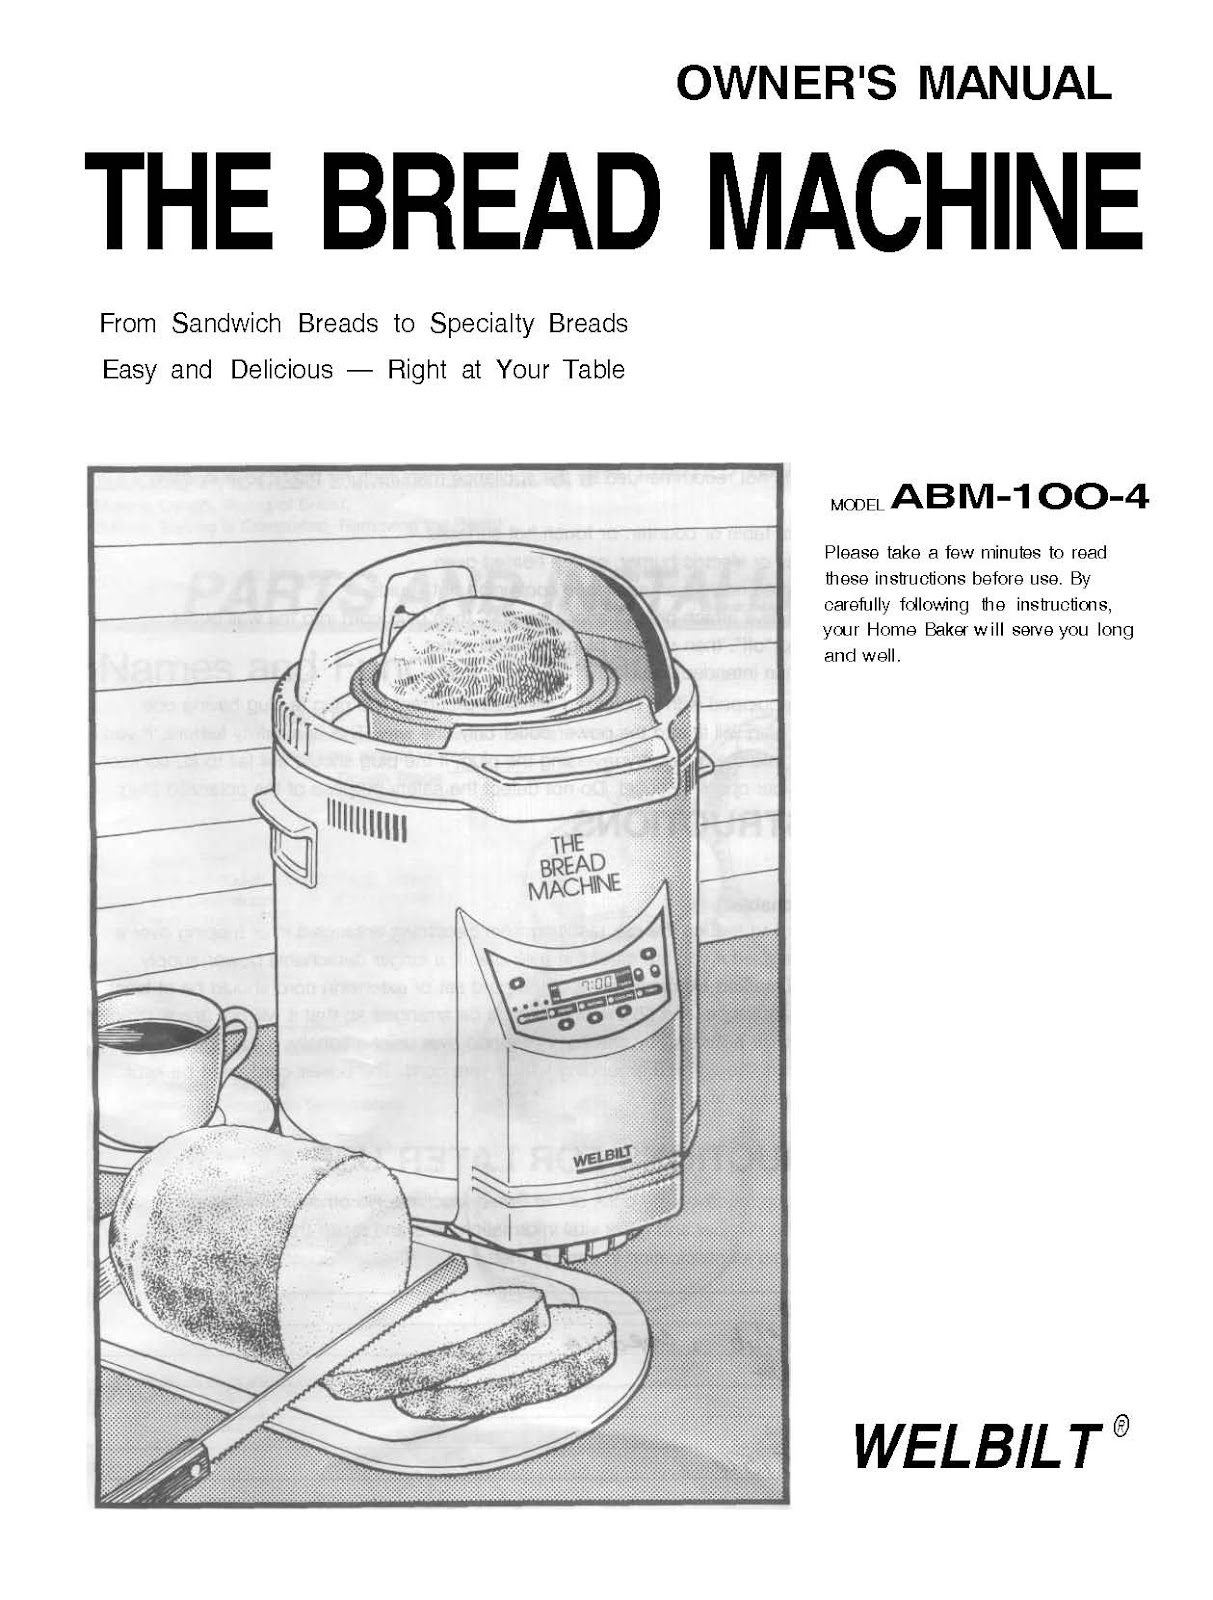 welbilt bread machine blog model abm100 4 welbilt bread machine rh welbiltbreadmachine blogspot com Bread Machine Recipes Bread Machine Recipes